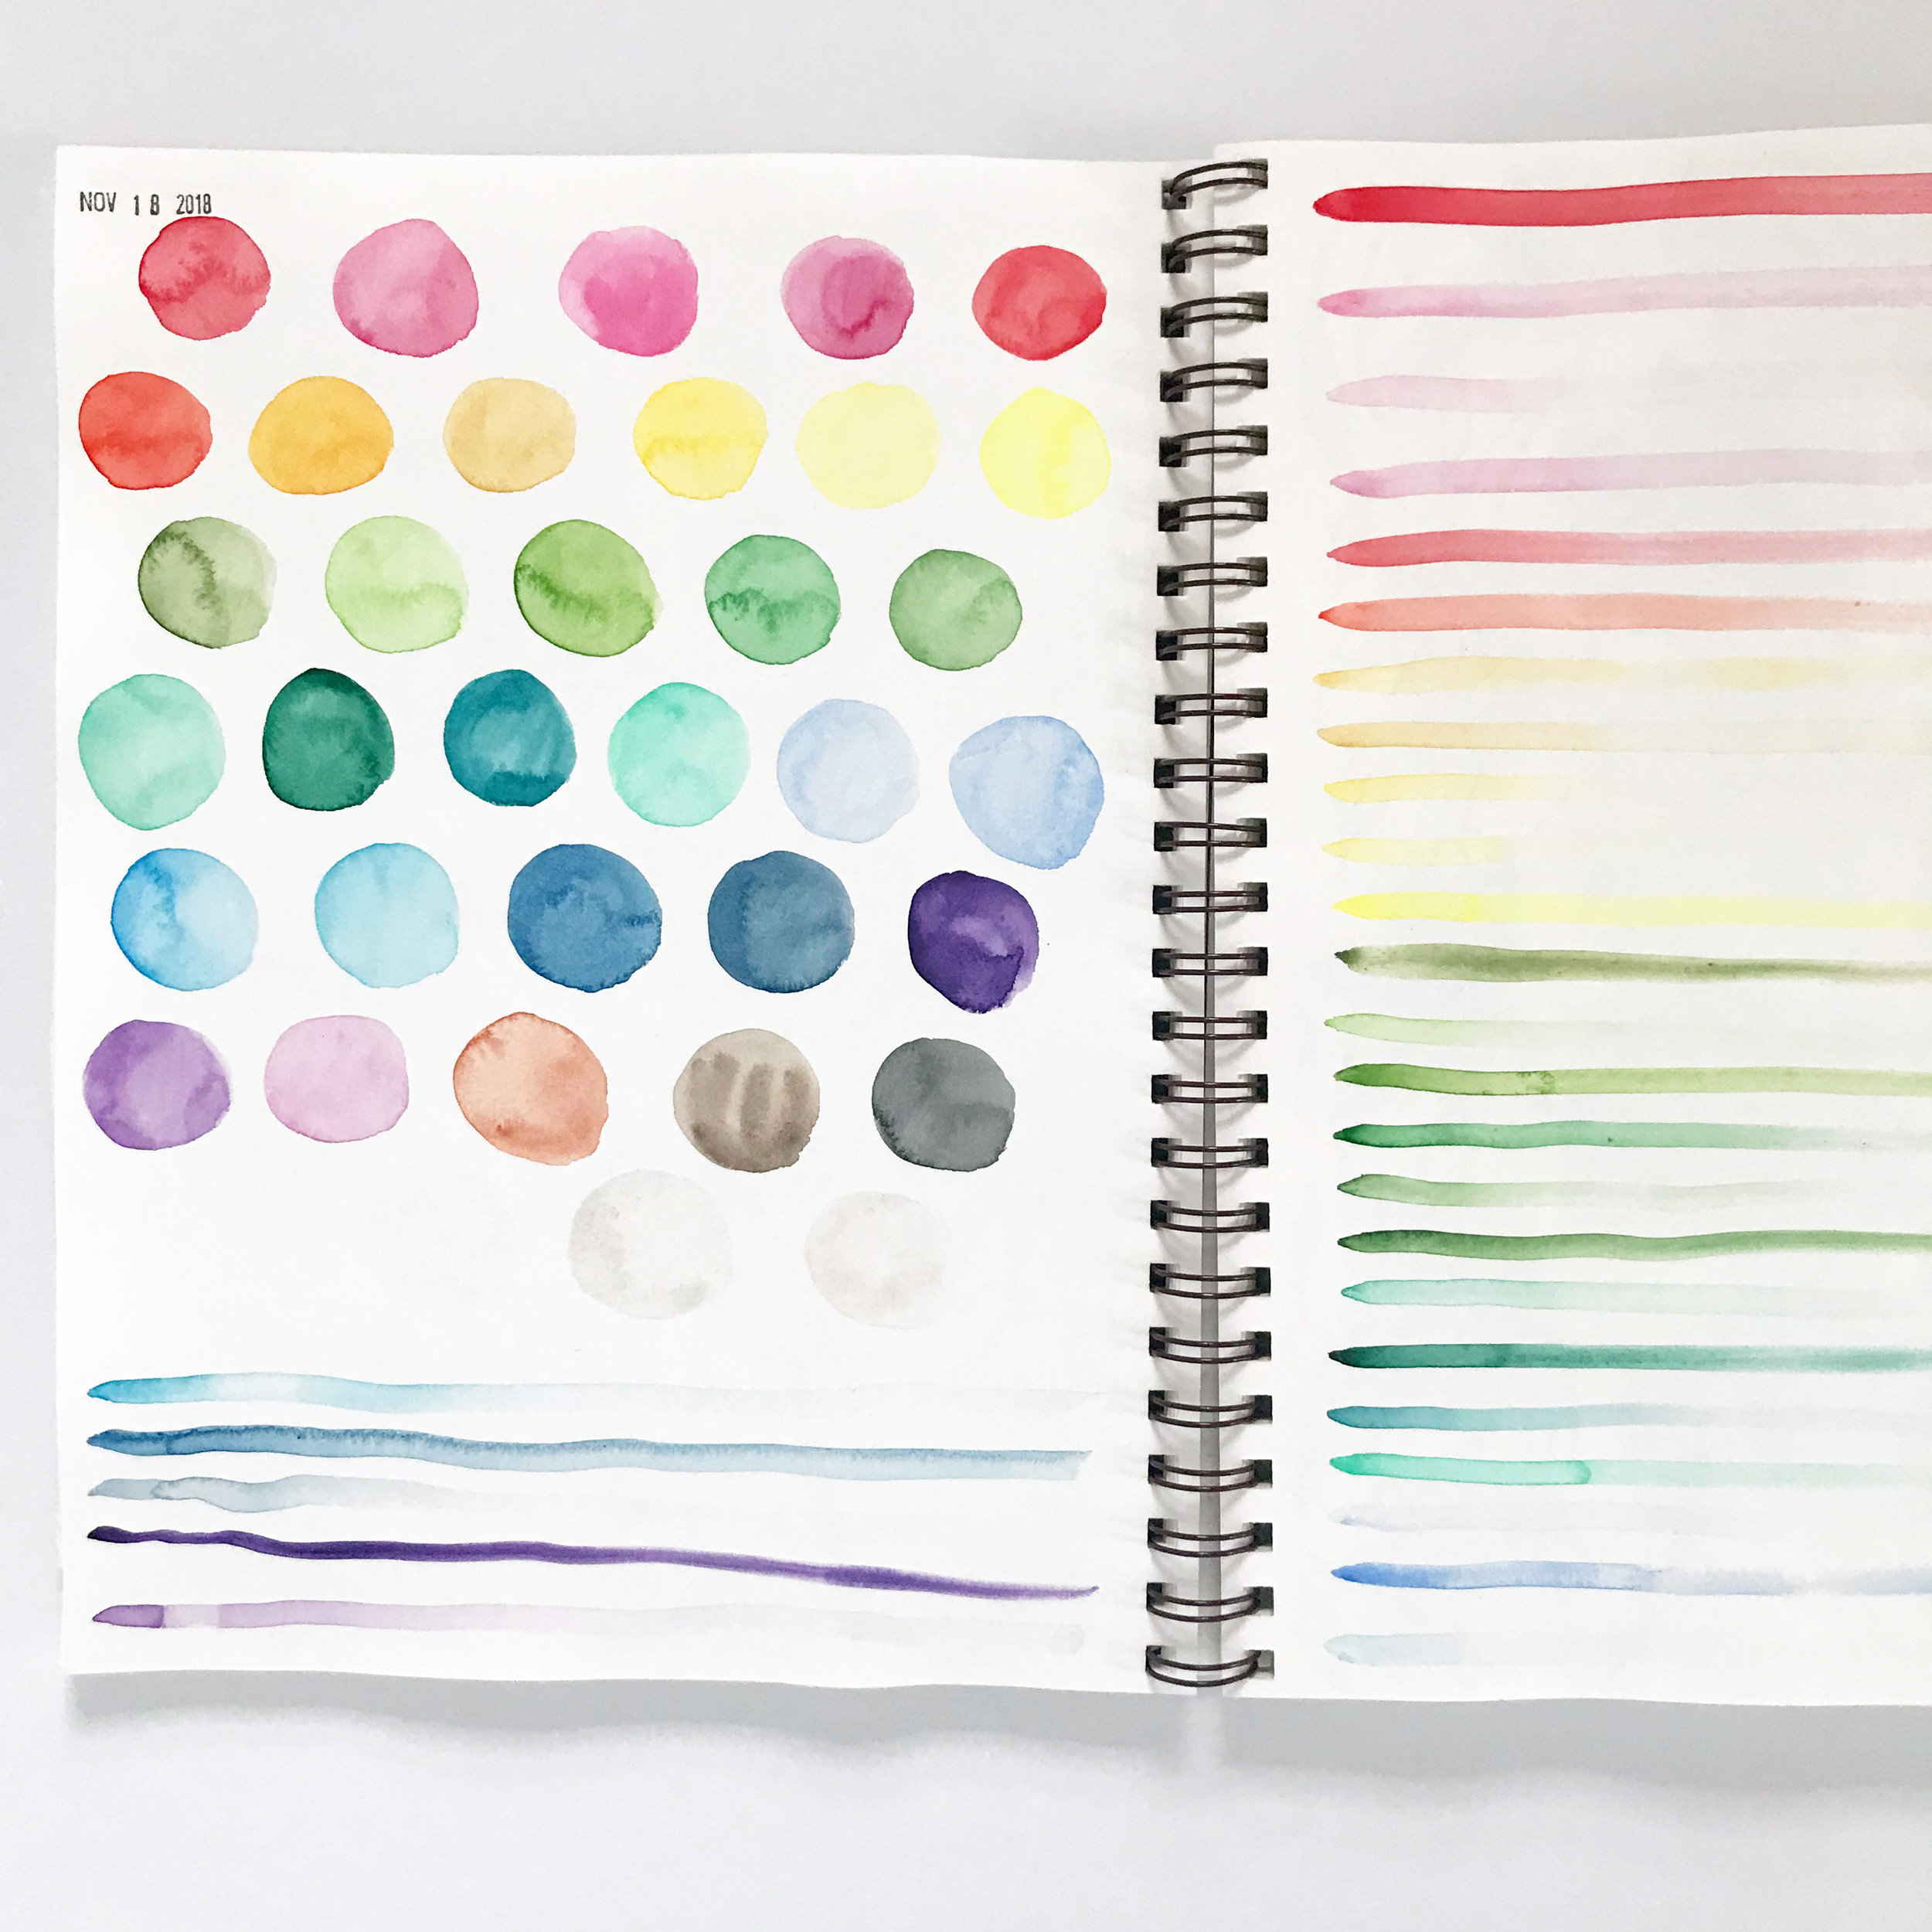 Swatching the Kuretake Watercolors in My Sketchbook is a  Good Way to Get to Know the Paints